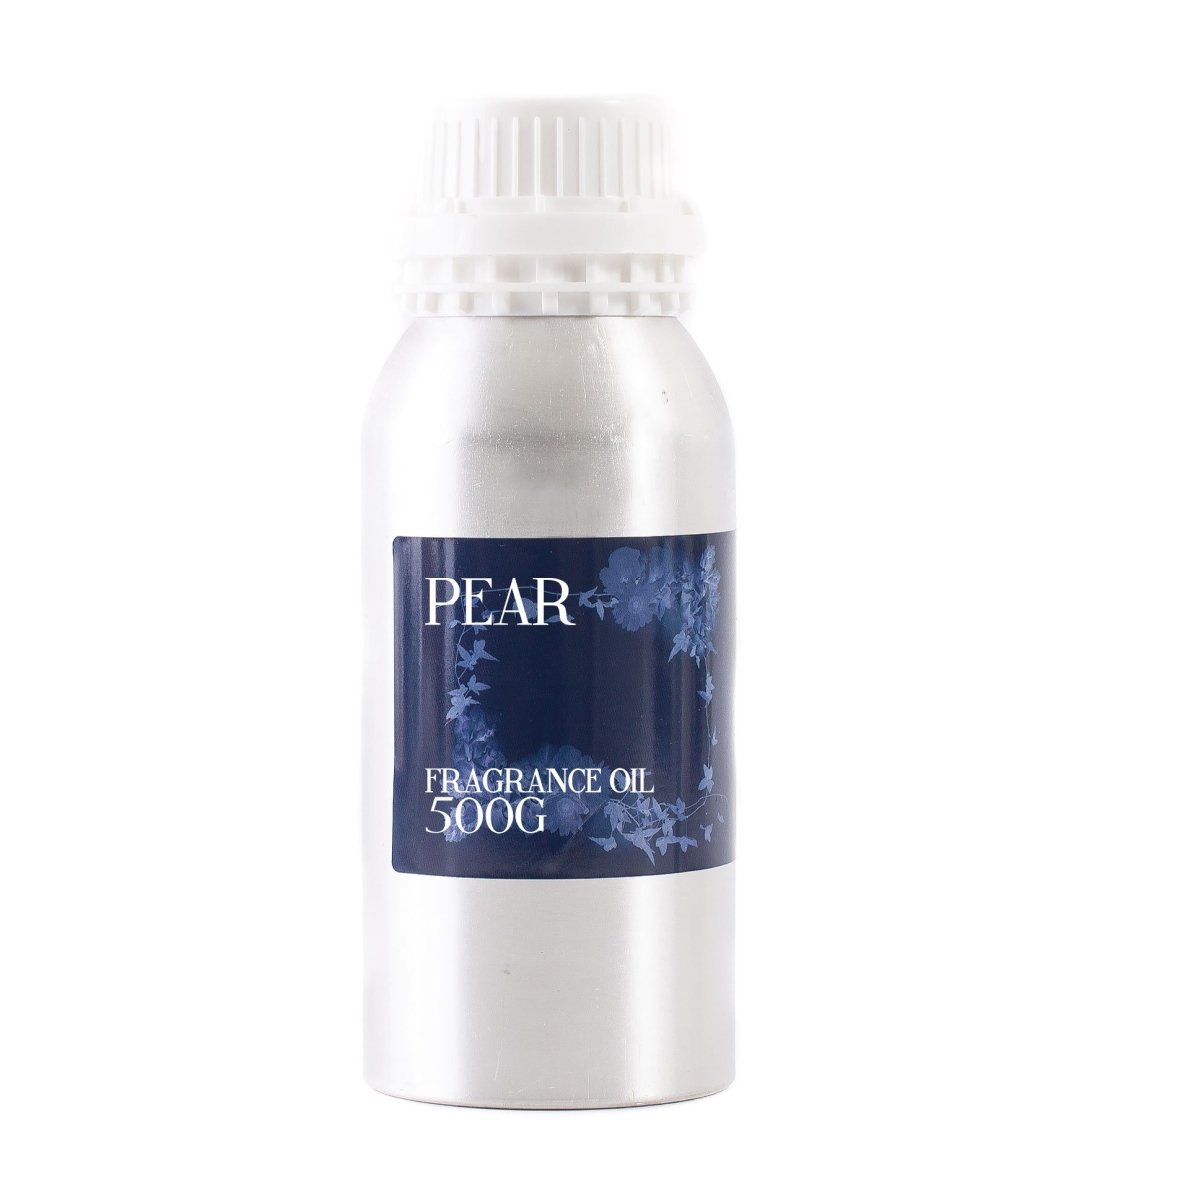 Pear Fragrance Oil - Mystic Moments UK